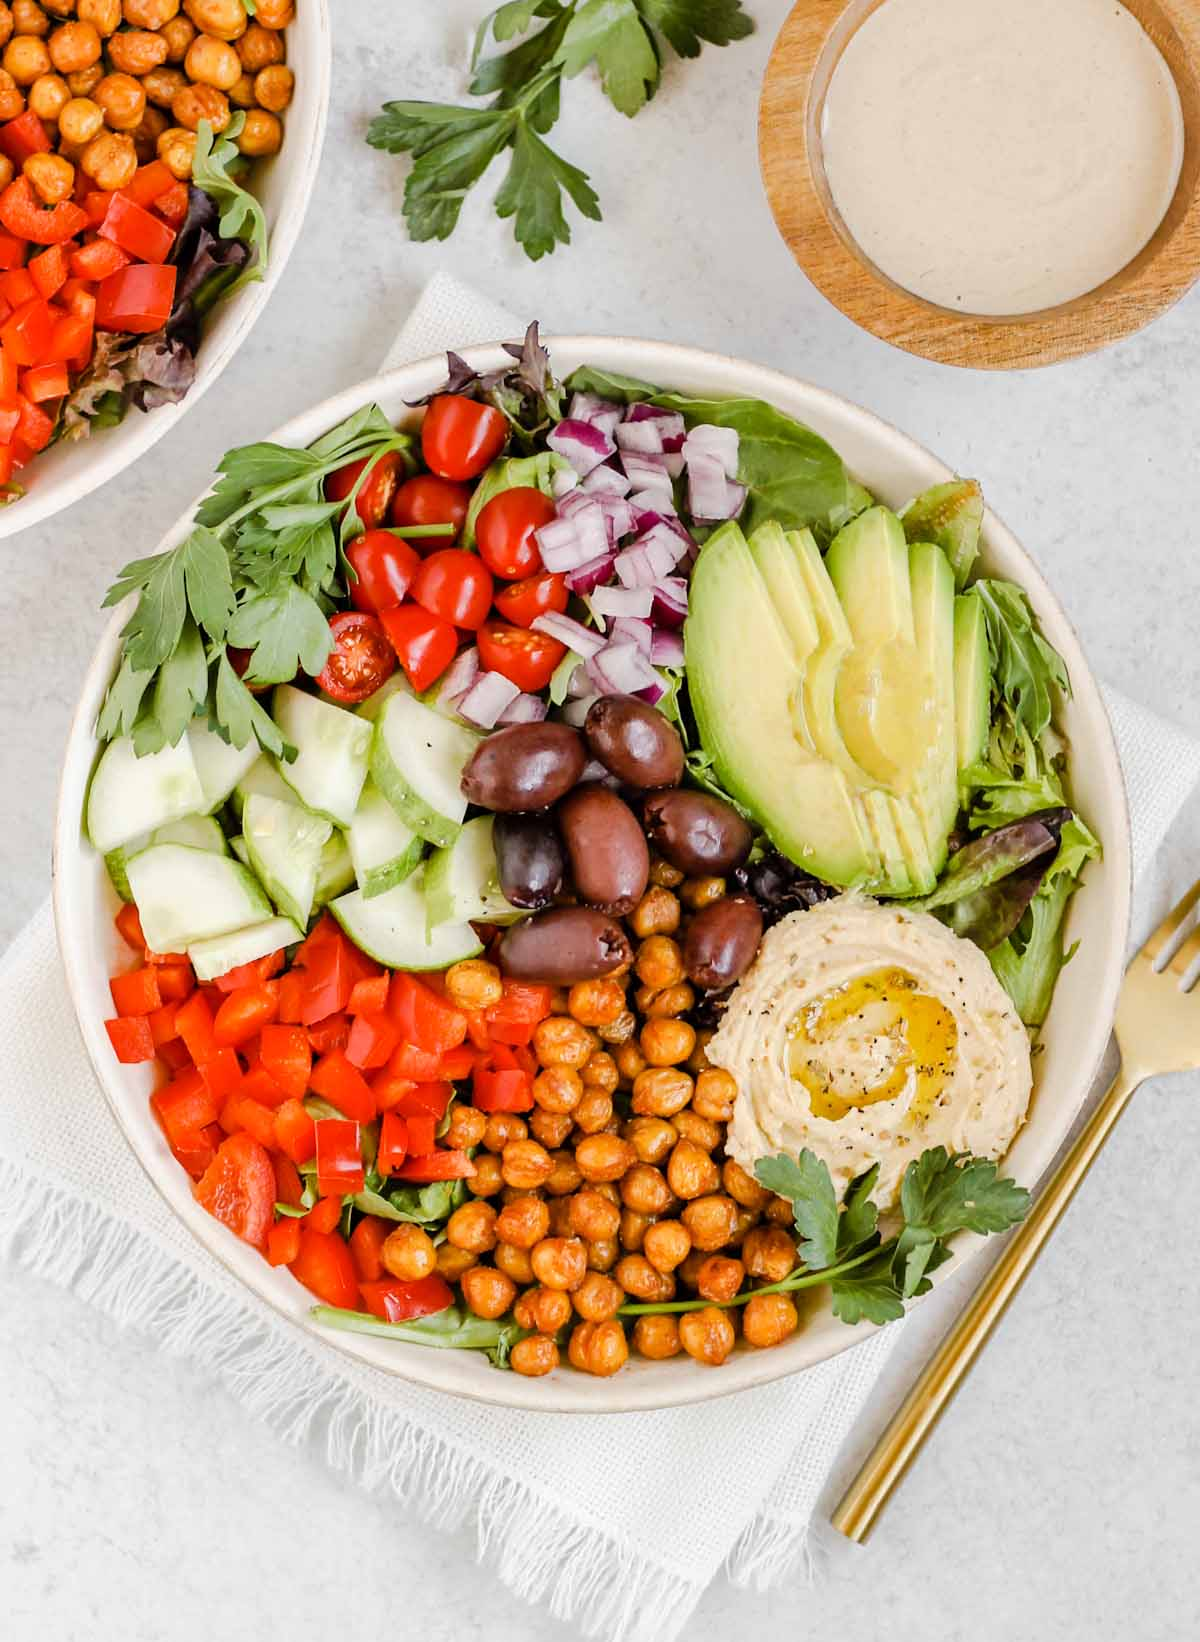 Mediterranean salad in a white bowl with a gold fork and a side of tahini dressing.